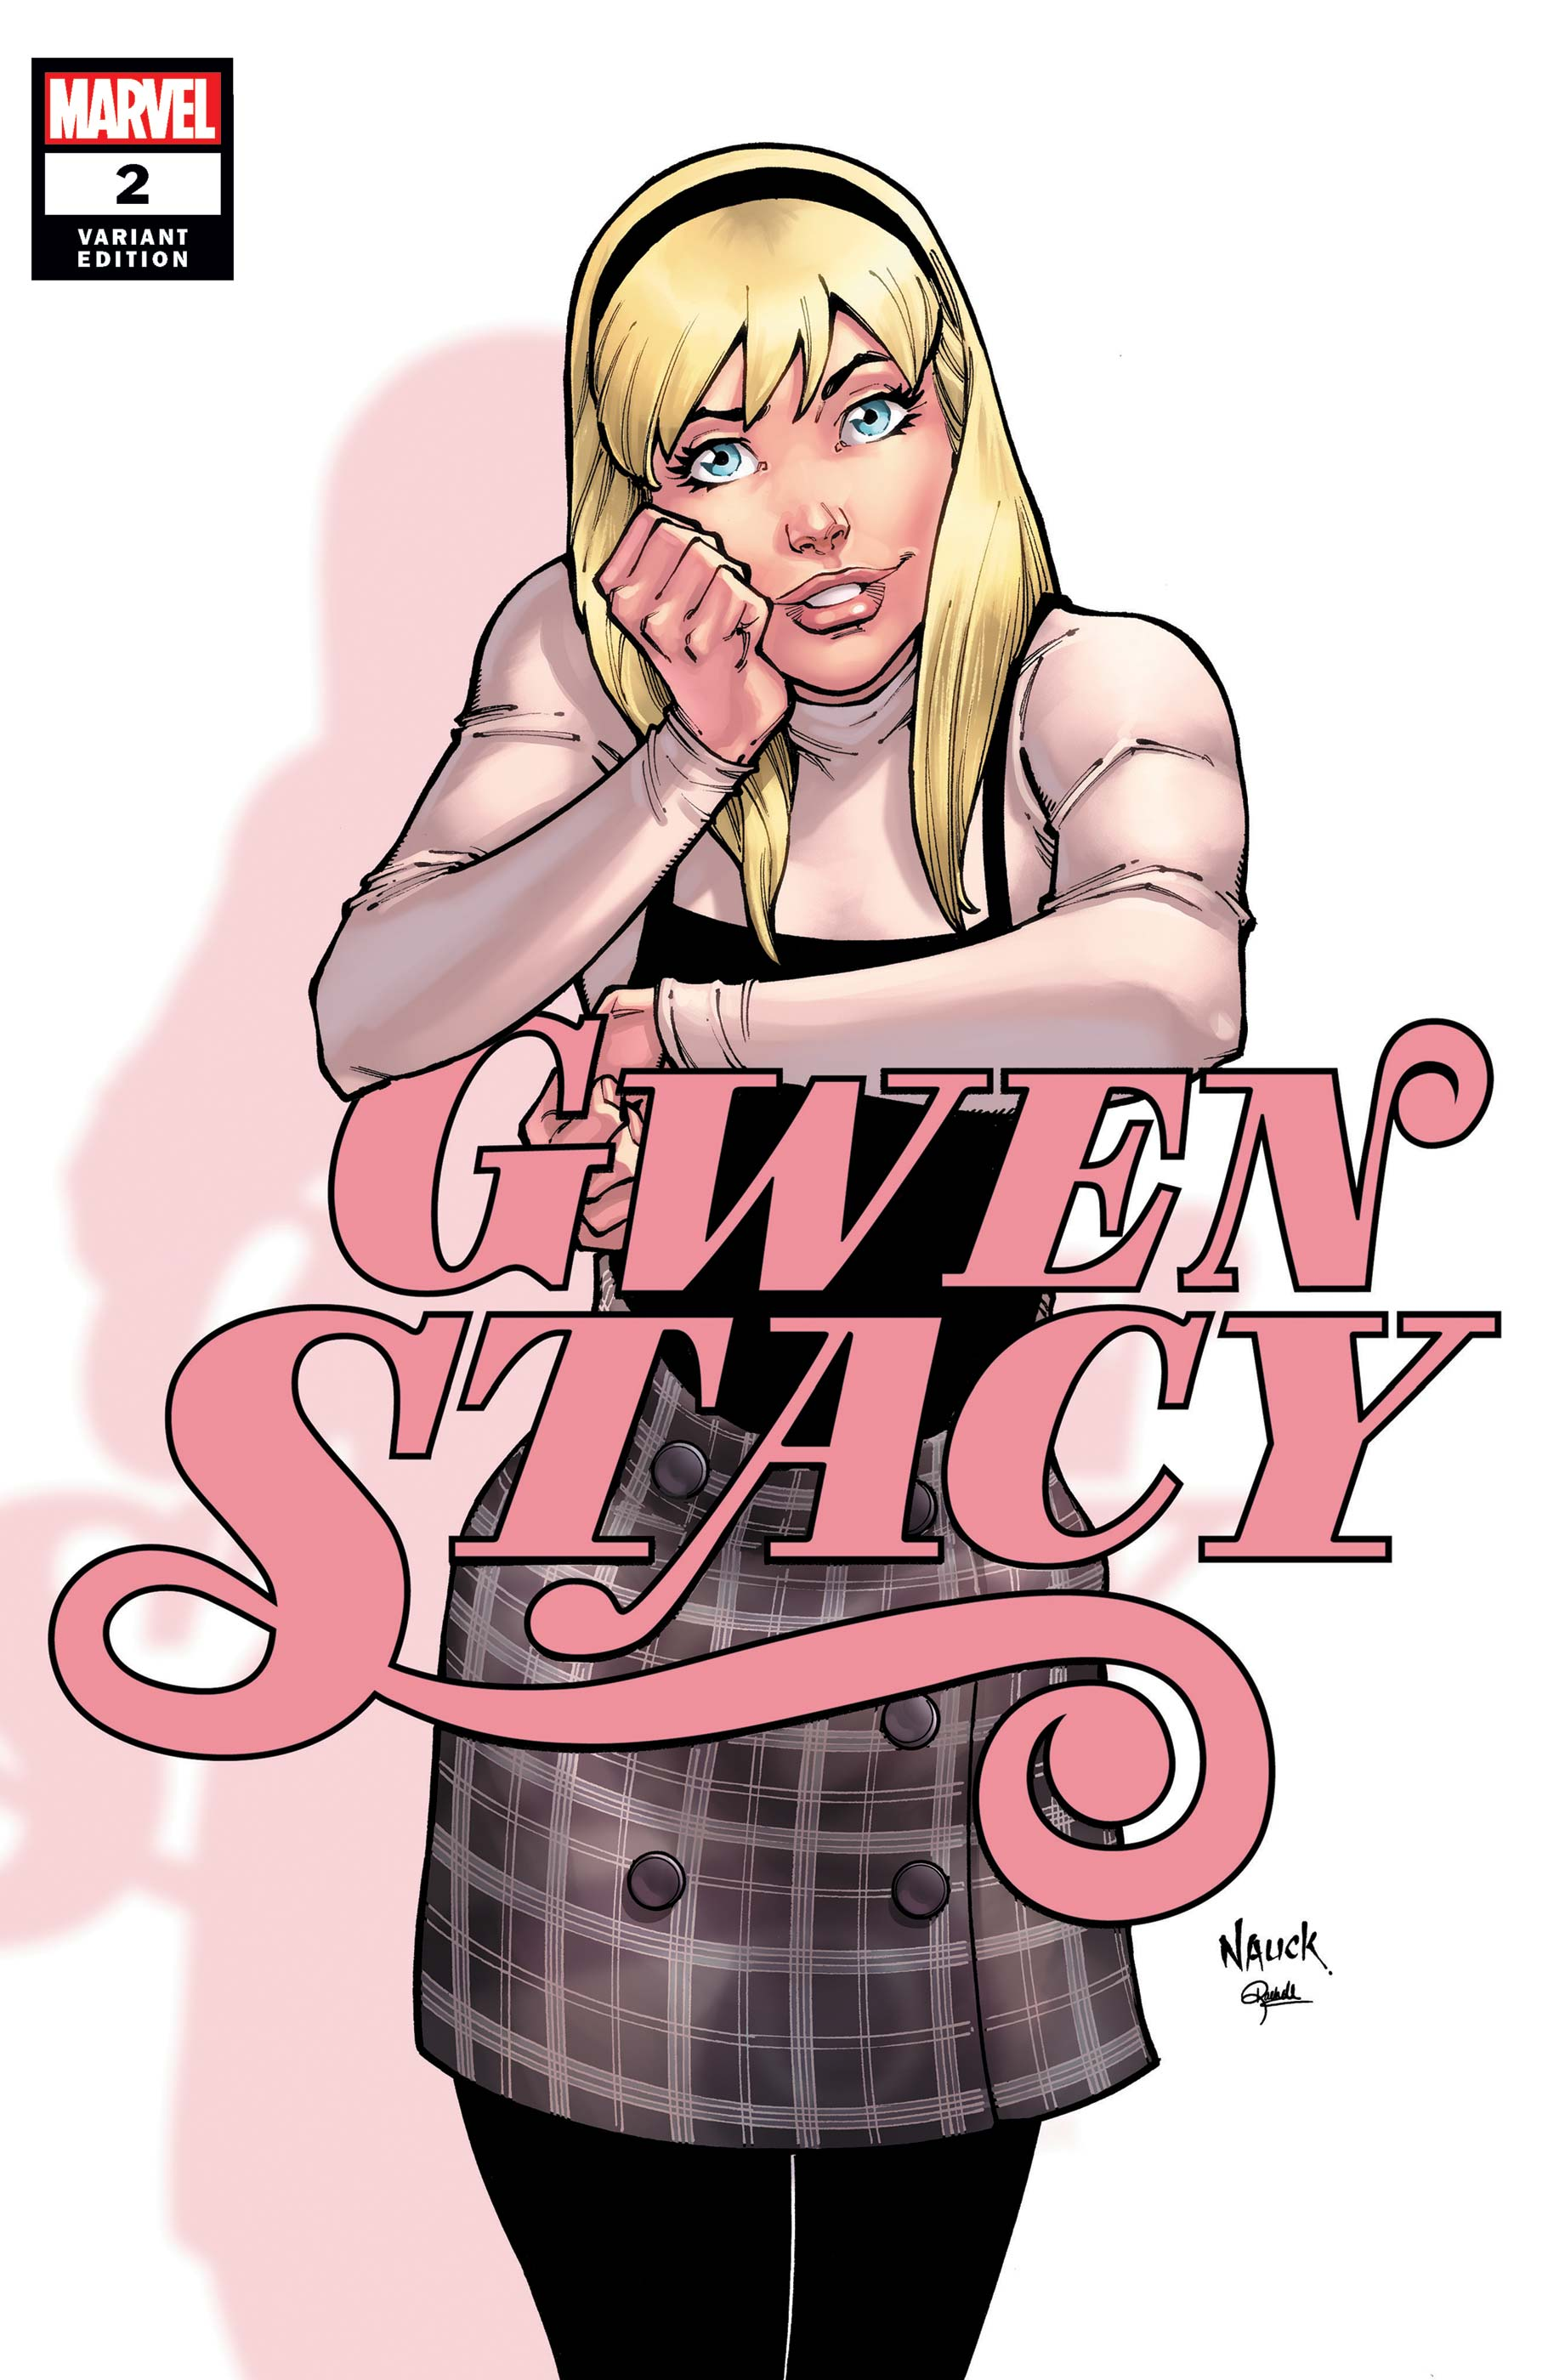 Gwen Stacy (2020) #2 (Variant)